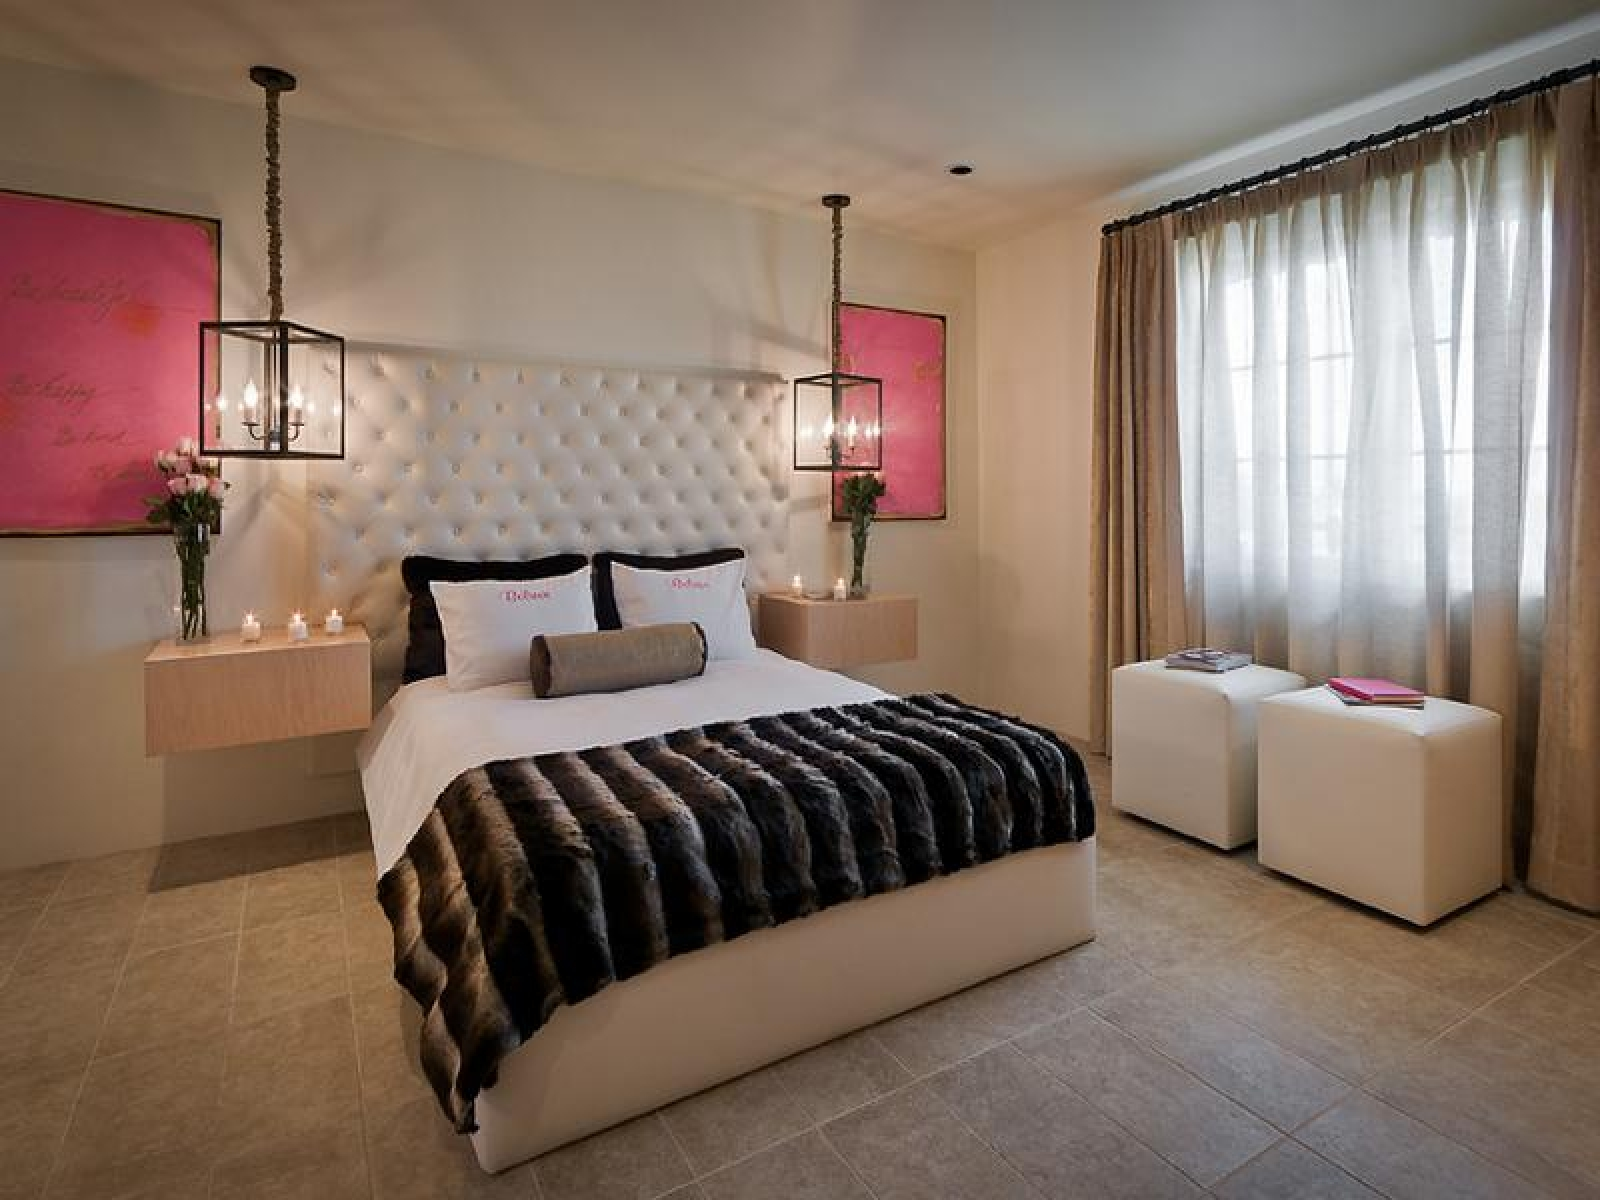 There's something about the emptiness or untidiness of an undecorated room that instantly strikes anxiety into the heart of a type a personality. Extraordinary Bedroom Ideas for Young Adults with Jazzy